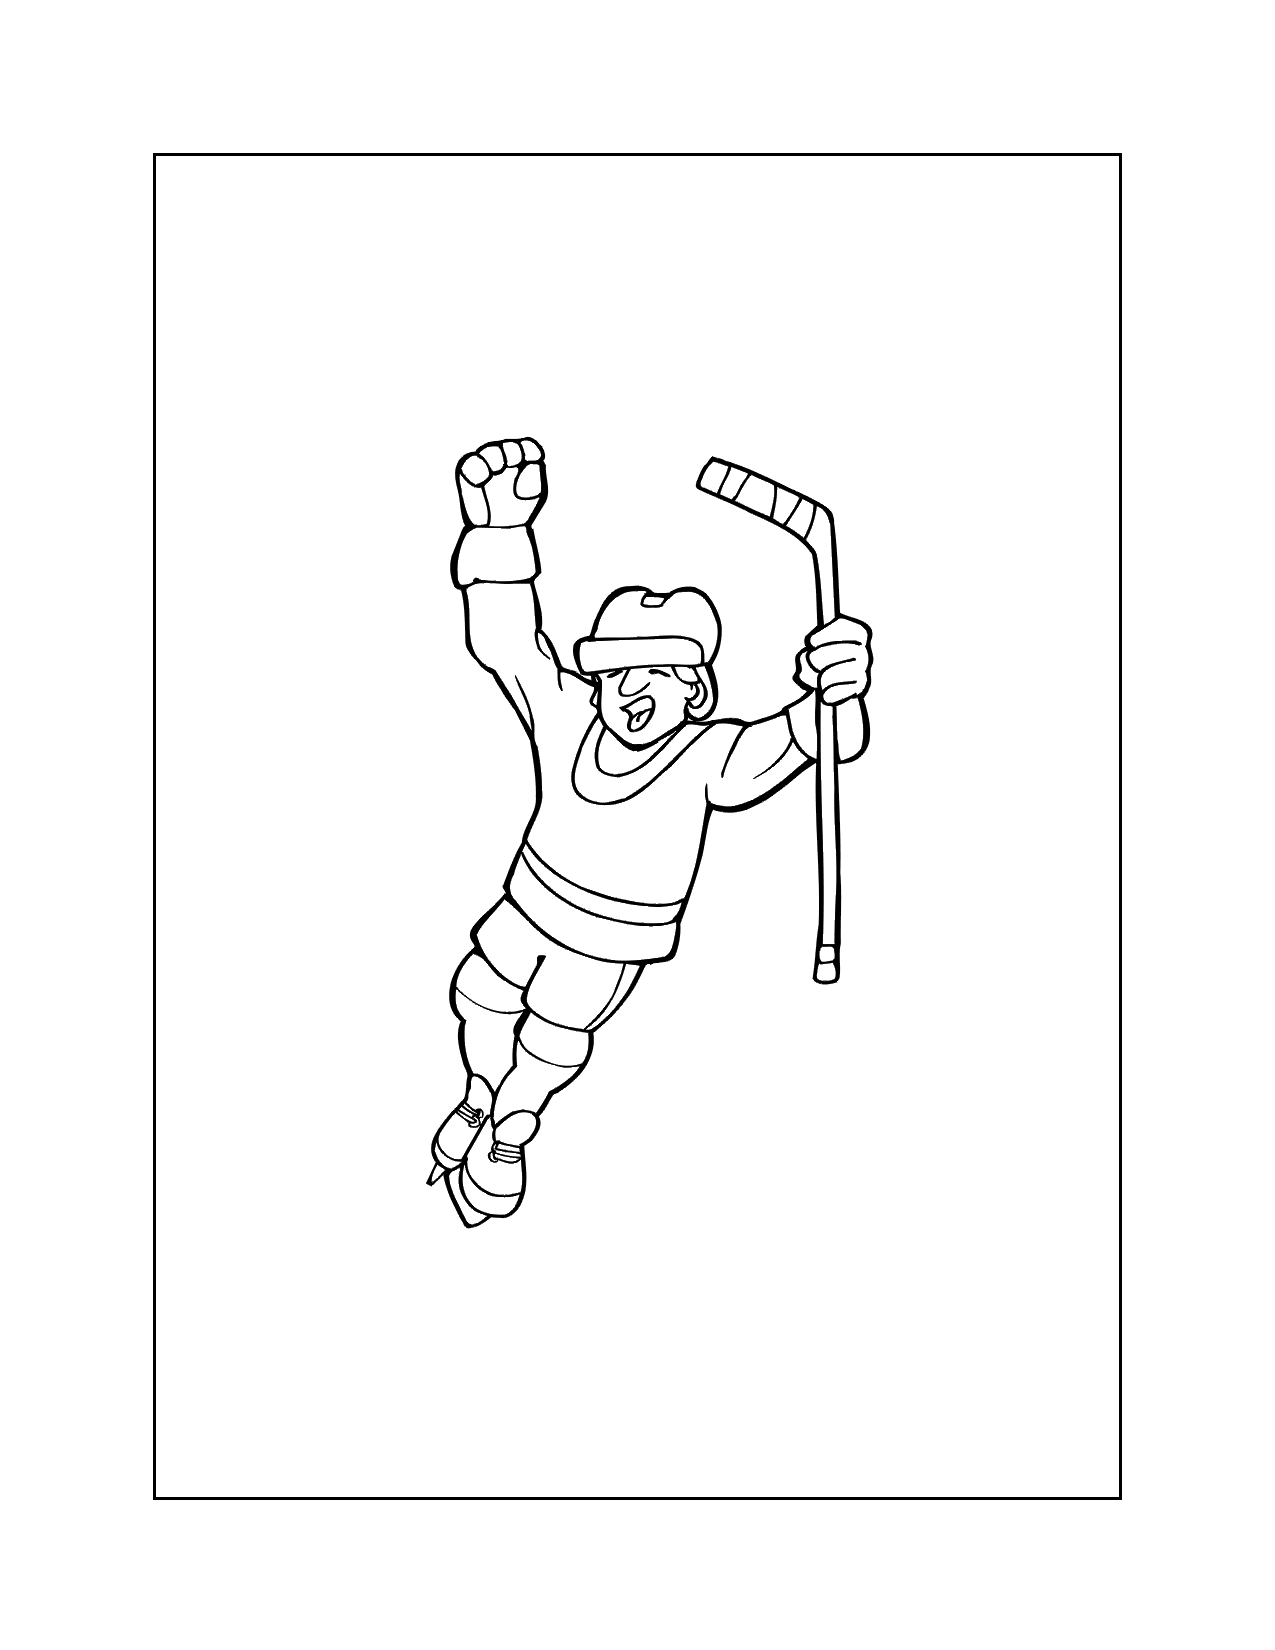 Hockey Score Coloring Pages